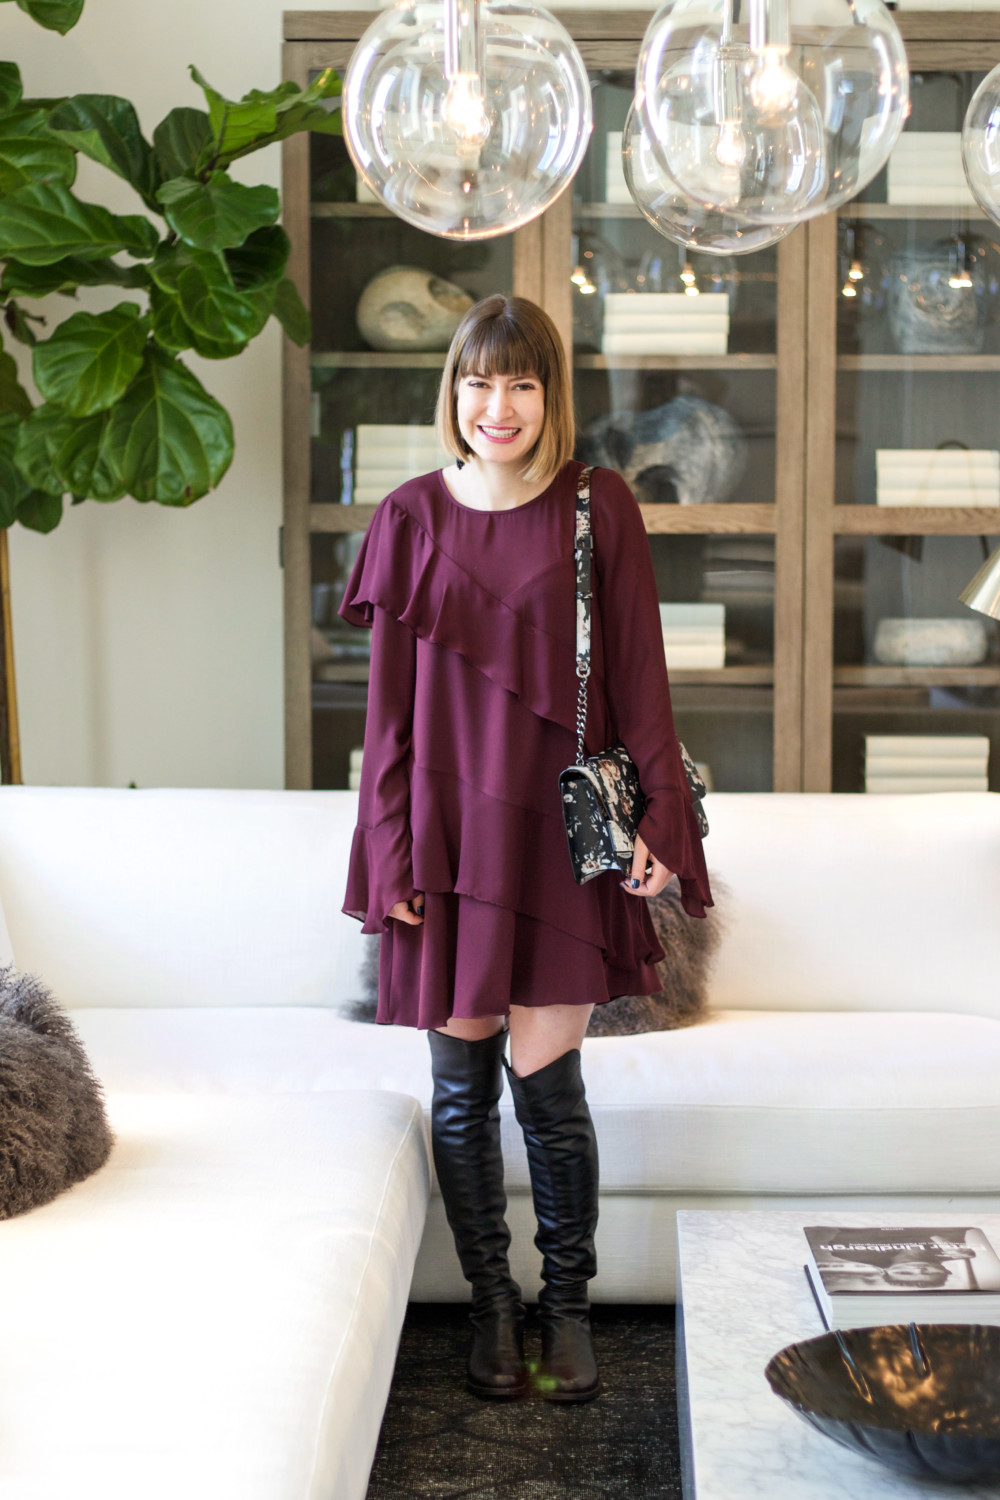 Ruffle Dress Holiday Look